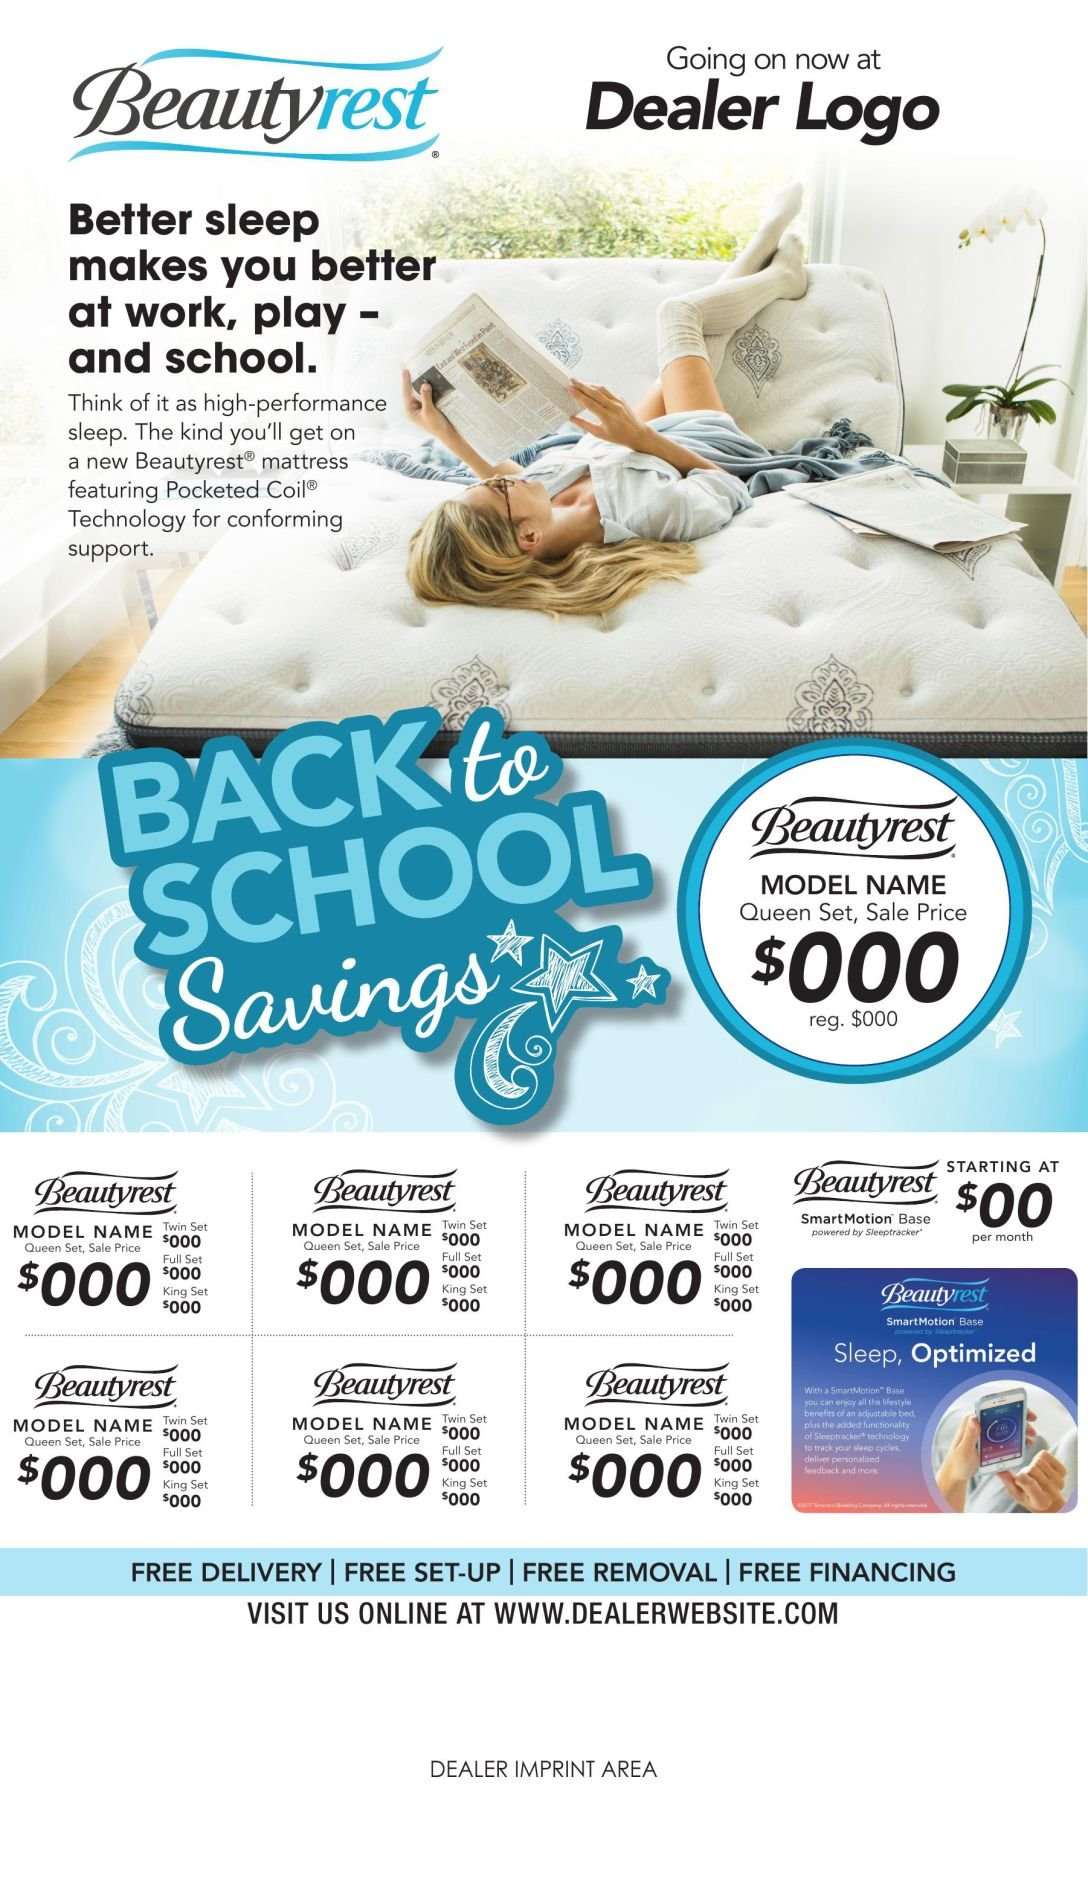 beautyrest dealers to advertise back to school savings advertise